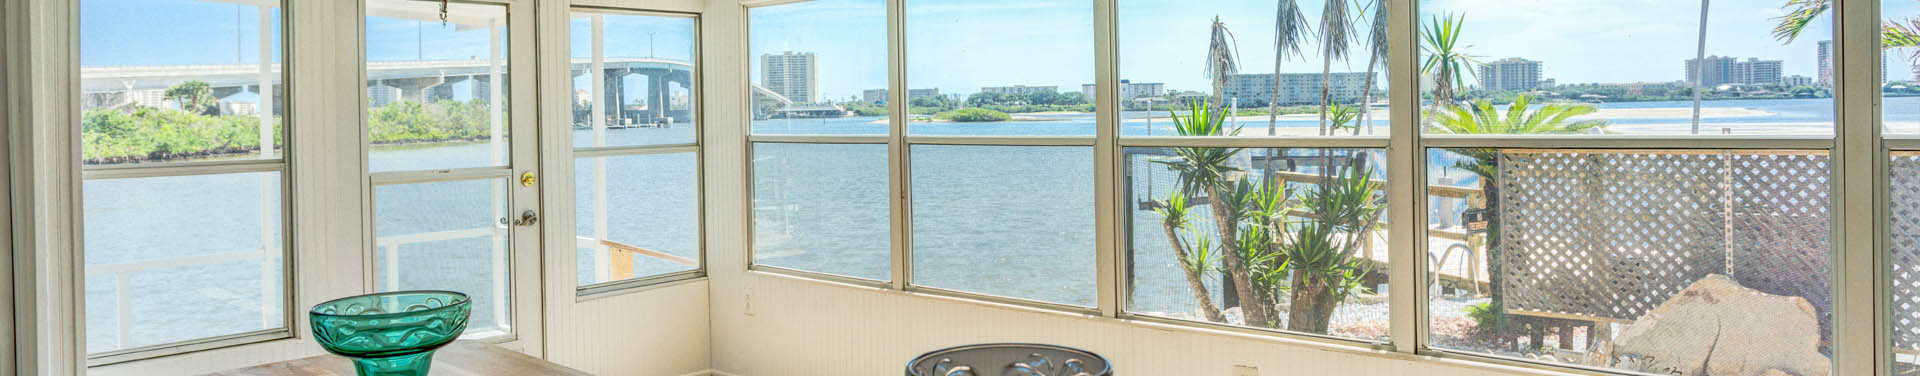 Photo of the view of the blue ocean and bridge over the water from inside a manufactured home through glass windows